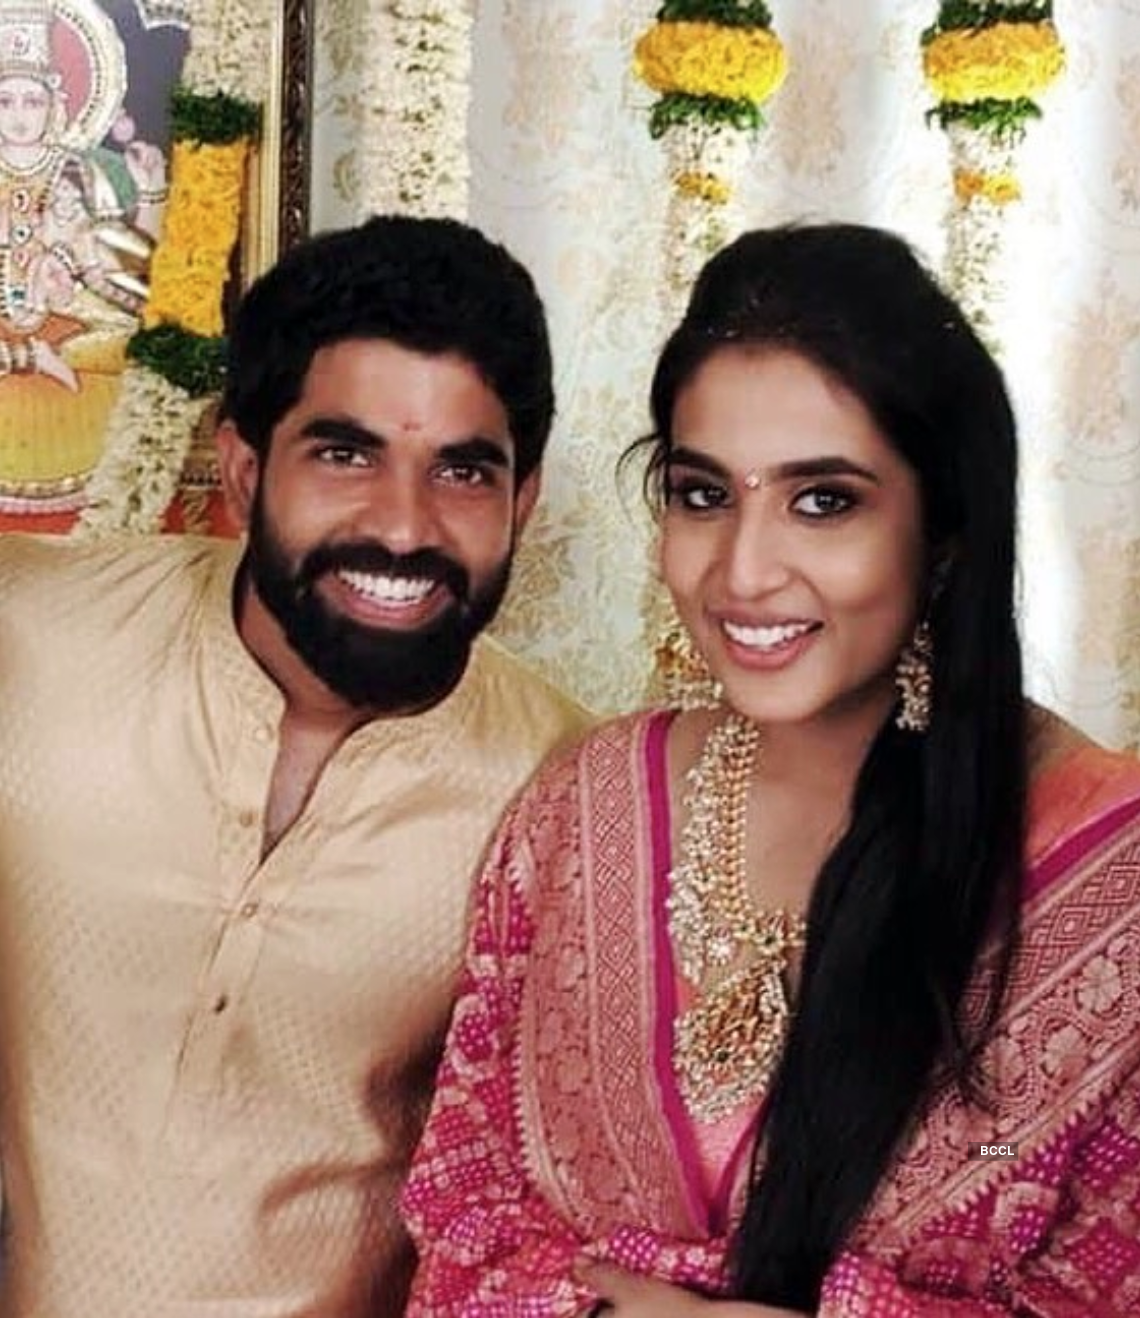 Engagement photos of SS Rajamouli's son Karthikeya & actor Jagapathi Babu's niece Pooja Prasad go viral...